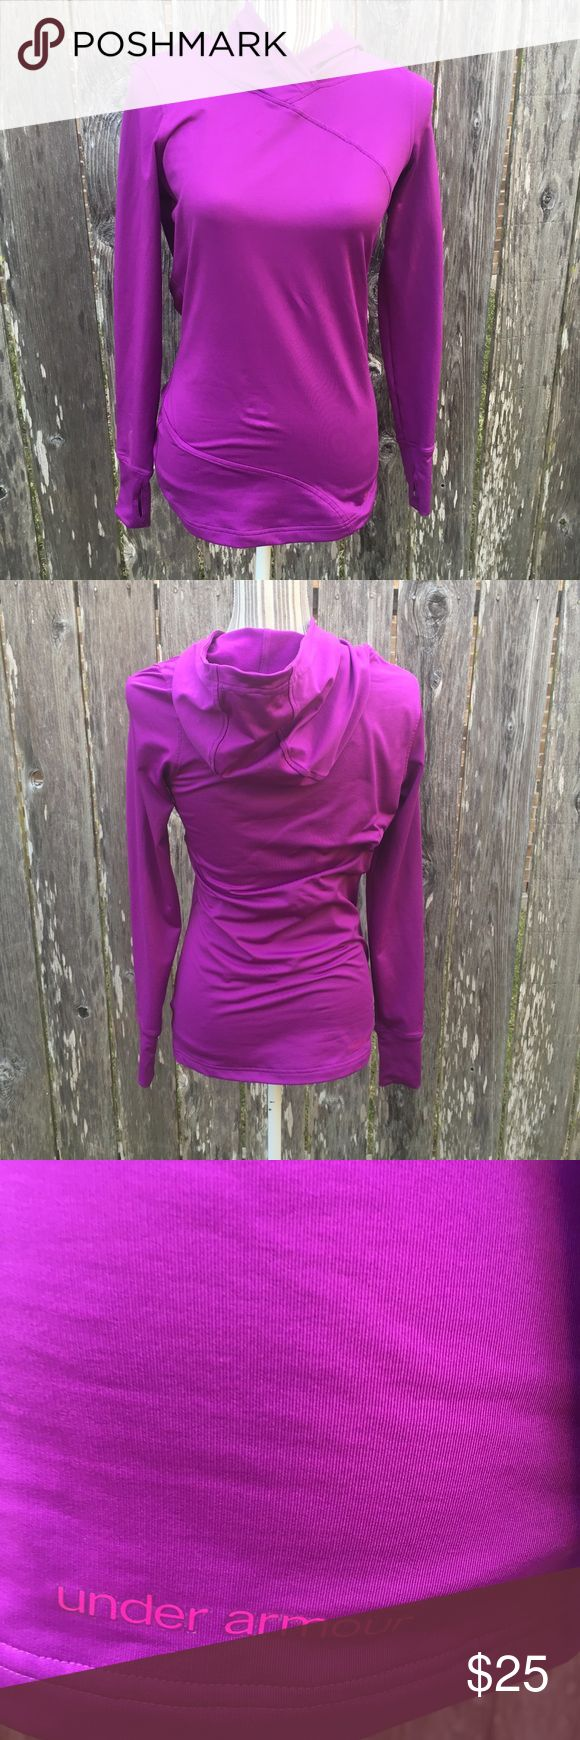 Under Armour ColdGear Purple Pullover Sz Small Under Armour ColdGear Purple Hooded Pullover Size Small Under Armour Tops Sweatshirts & Hoodies